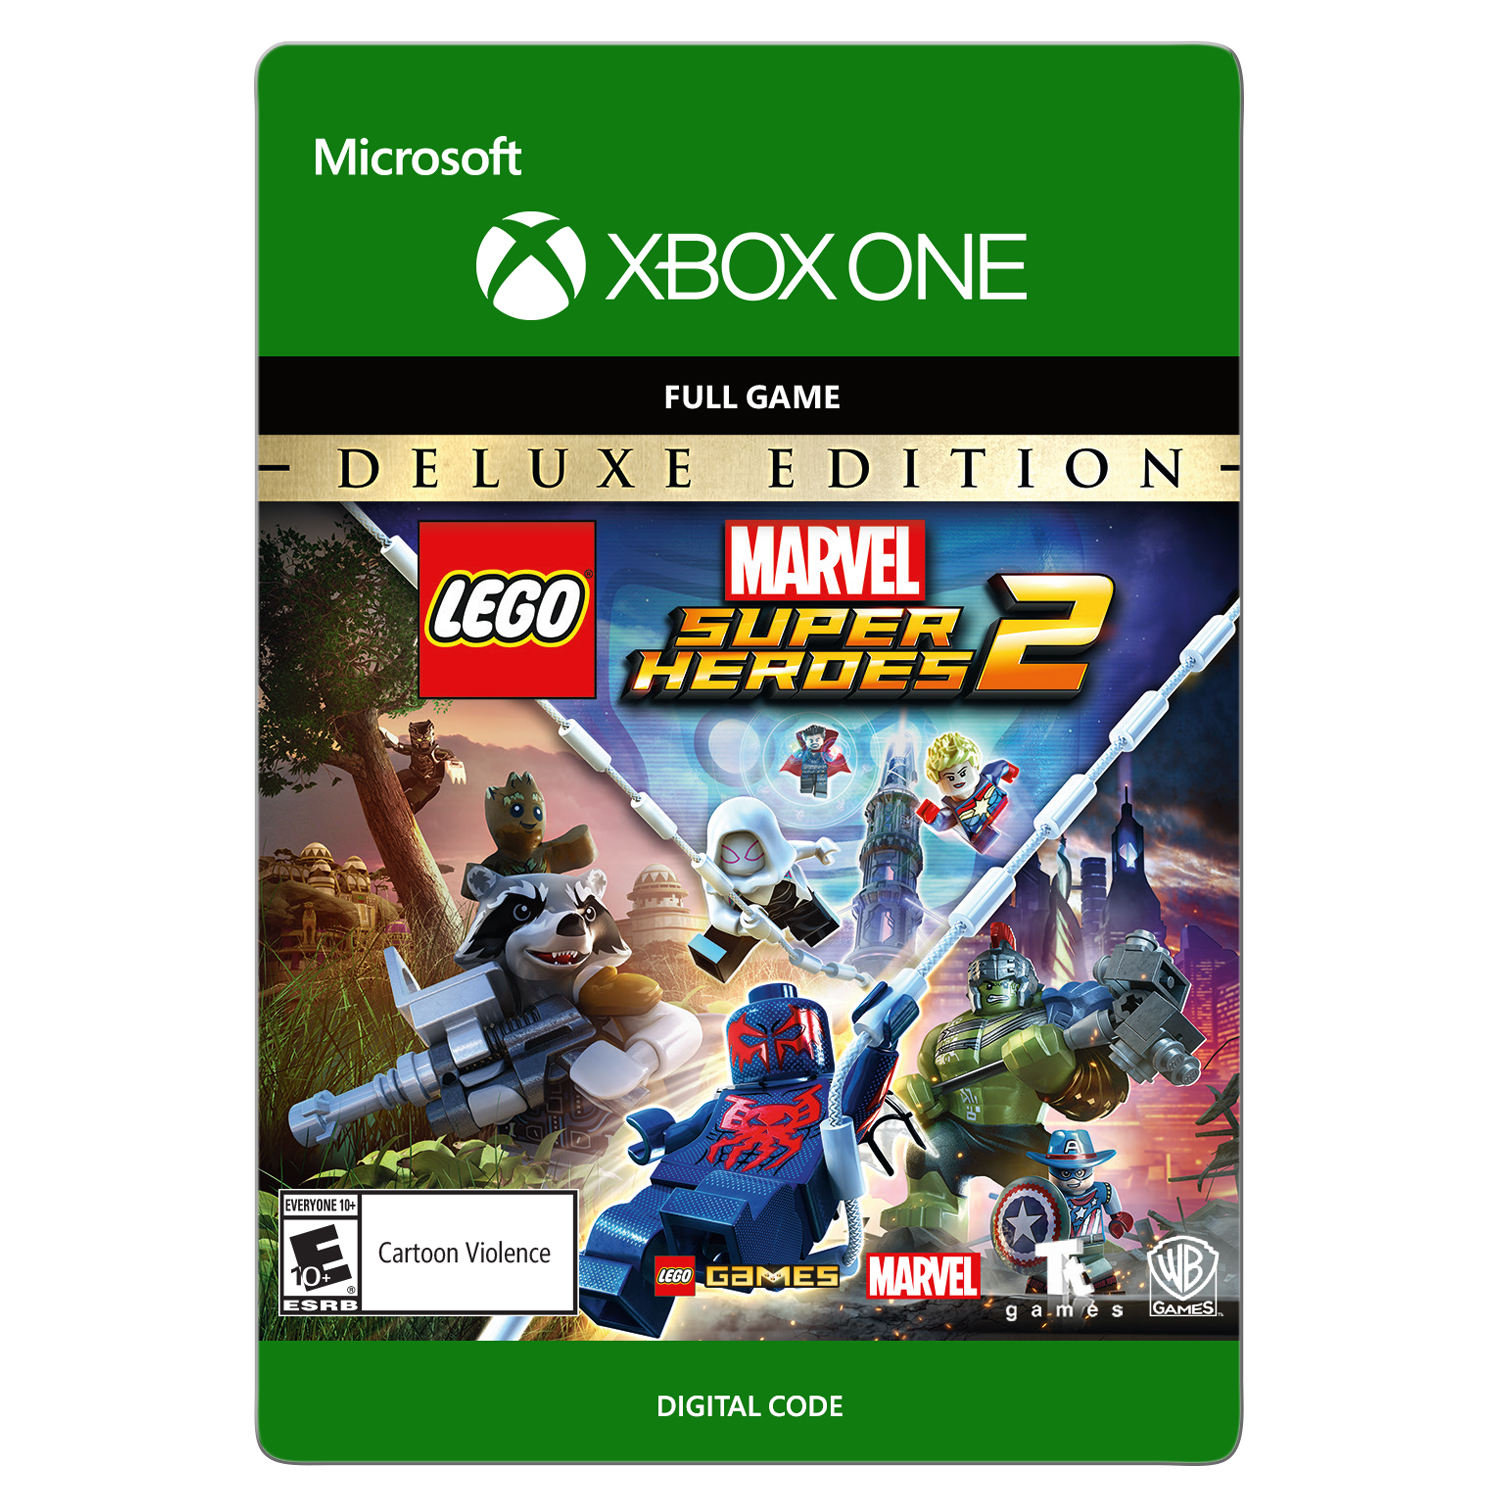 LEGO Marvel Super Heroes 2: Deluxe Edition Xbox One (Email Delivery)